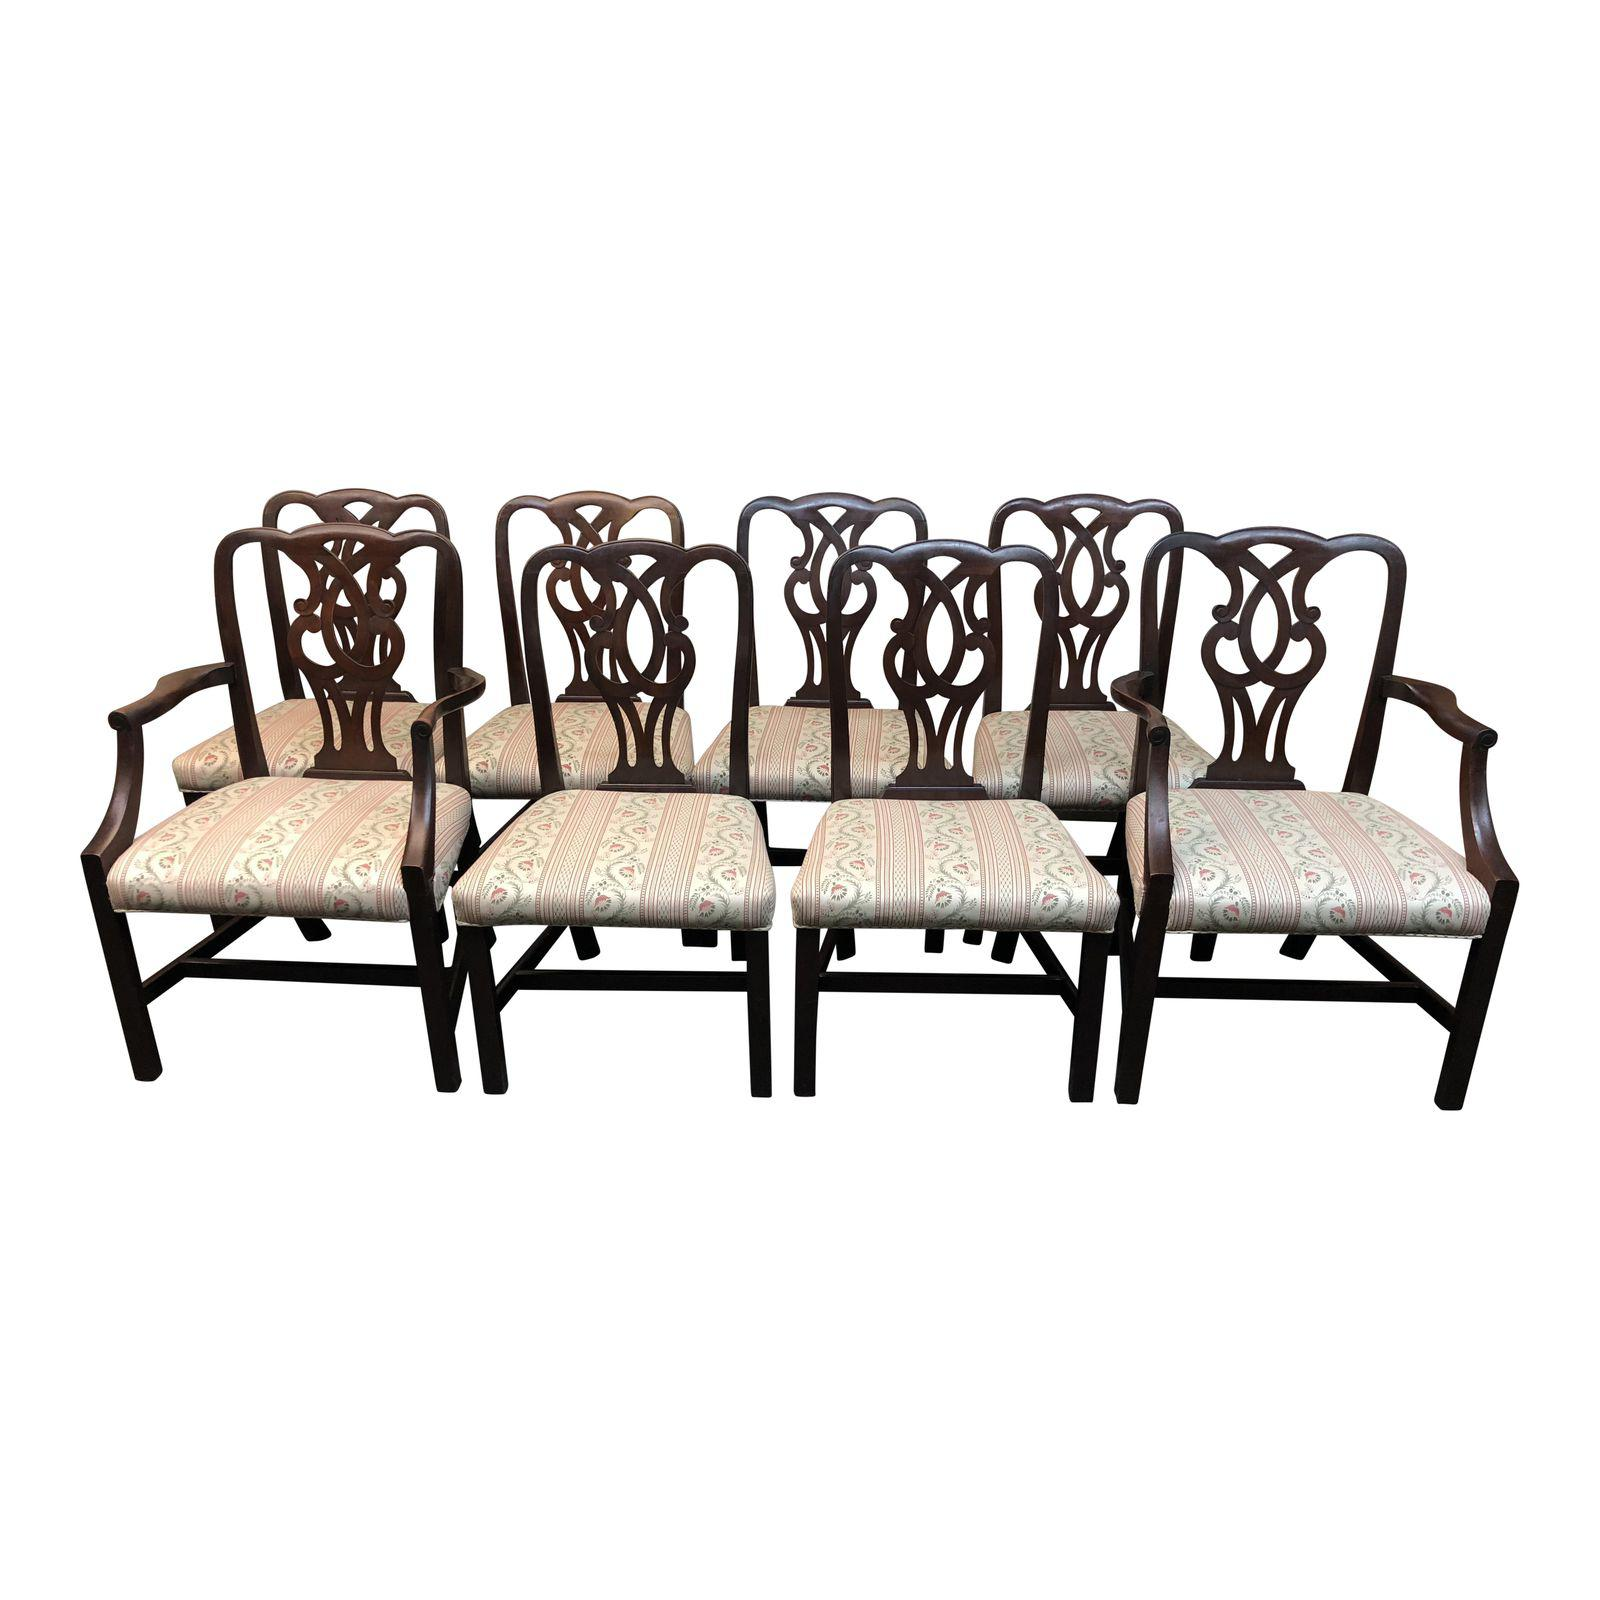 Mahogany Chippendale Style Dining Chairs - Set of 8 - Design Plus Gallery  sc 1 st  Design Plus Consignment : mahogany chippendale dining chairs - Cheerinfomania.Com